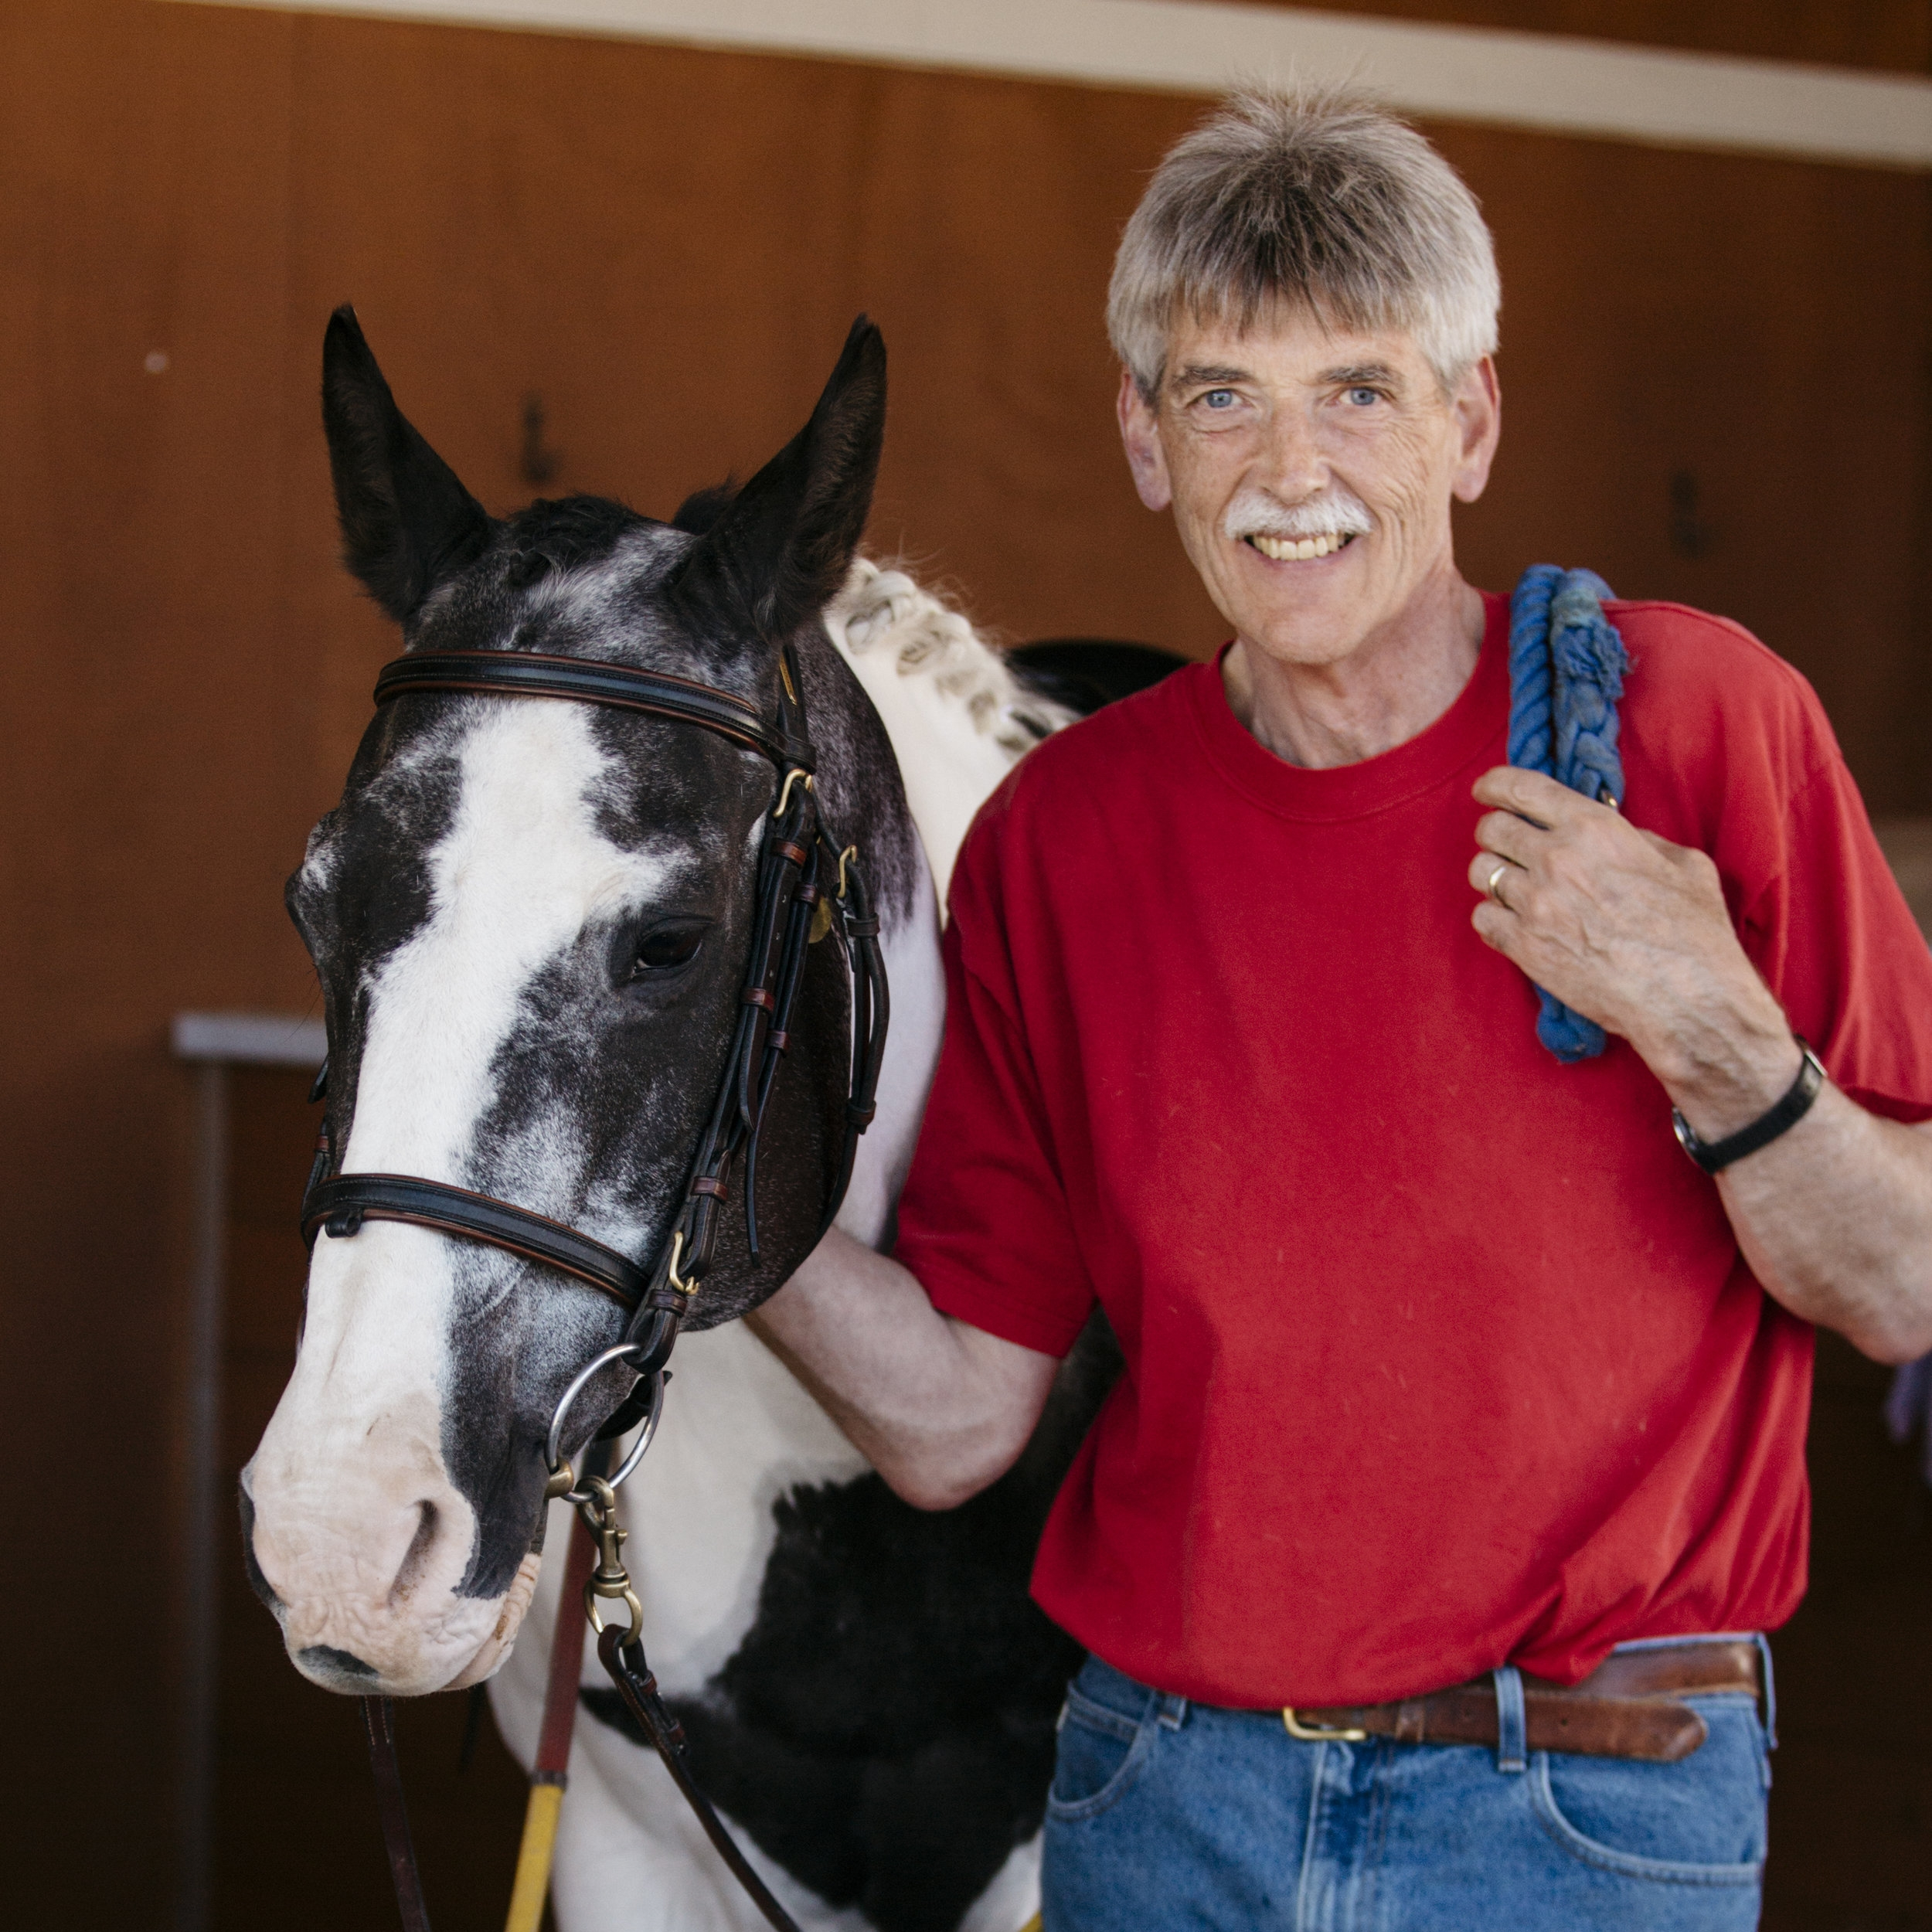 Man in a red shirt and jeans petting a white horse with black markings and ears.